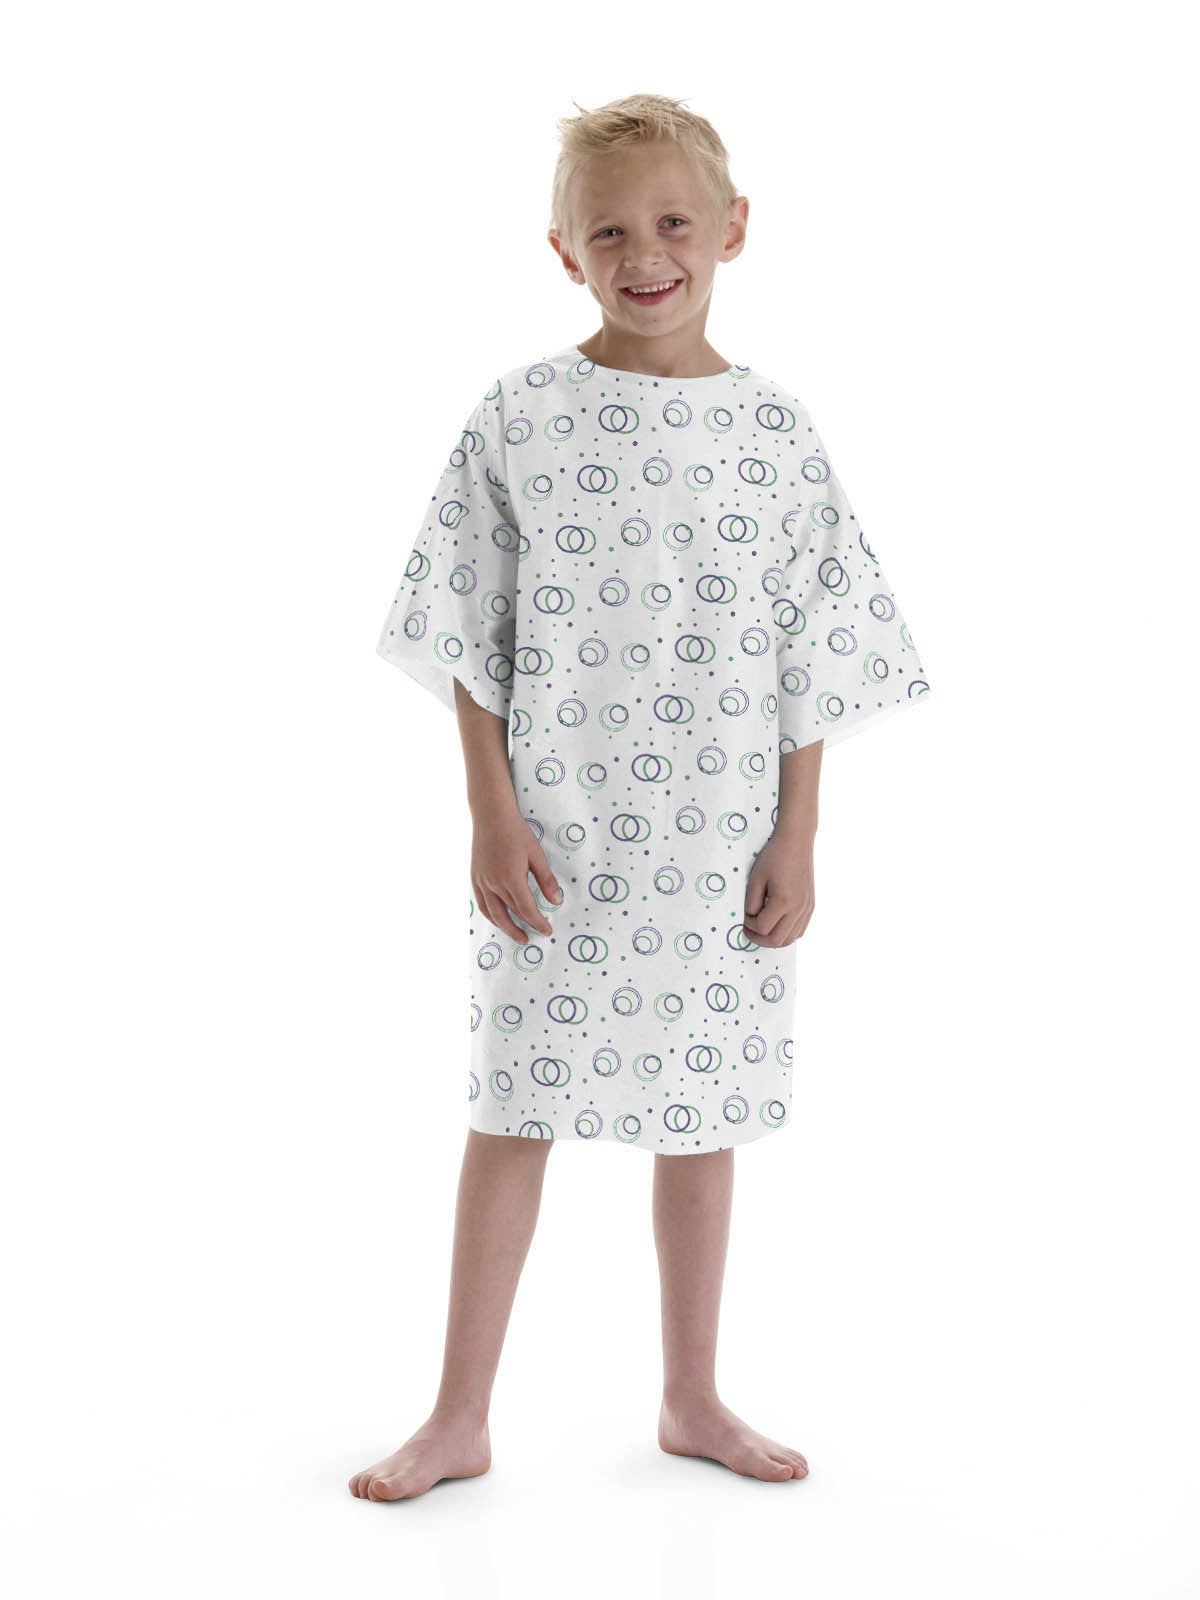 Disposable Pediatric Gown 5-8 years (50 per Case) - BH Medwear